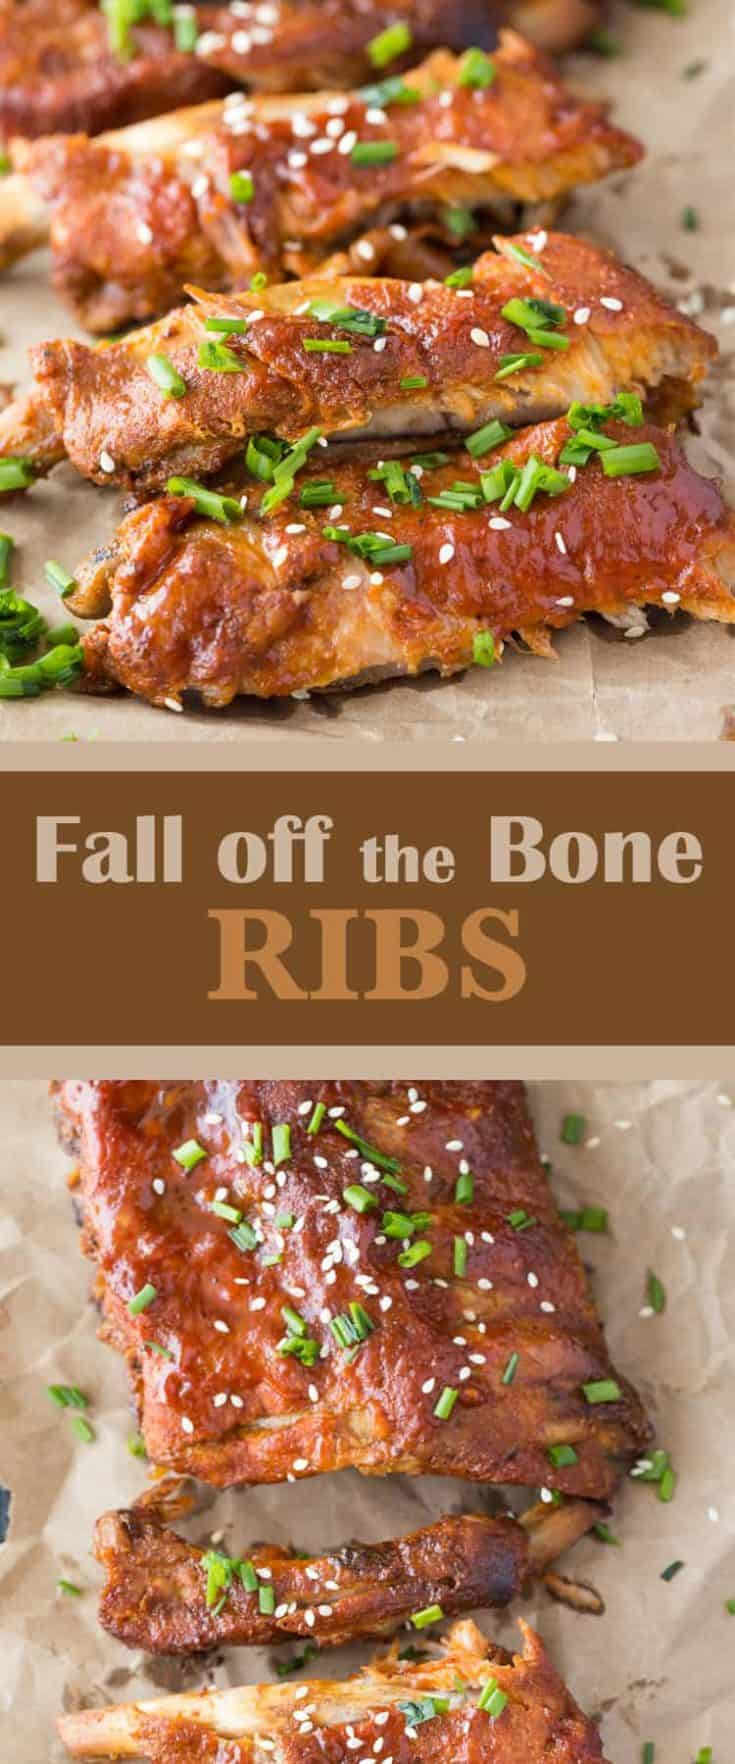 Thick, rich BBQ taste that you can't help but get all over the face. Winter or Summer, no one can resist Fall Off The Bone Ribs, beer barbecue style! #ribs #slowcookerribs #slowcooker